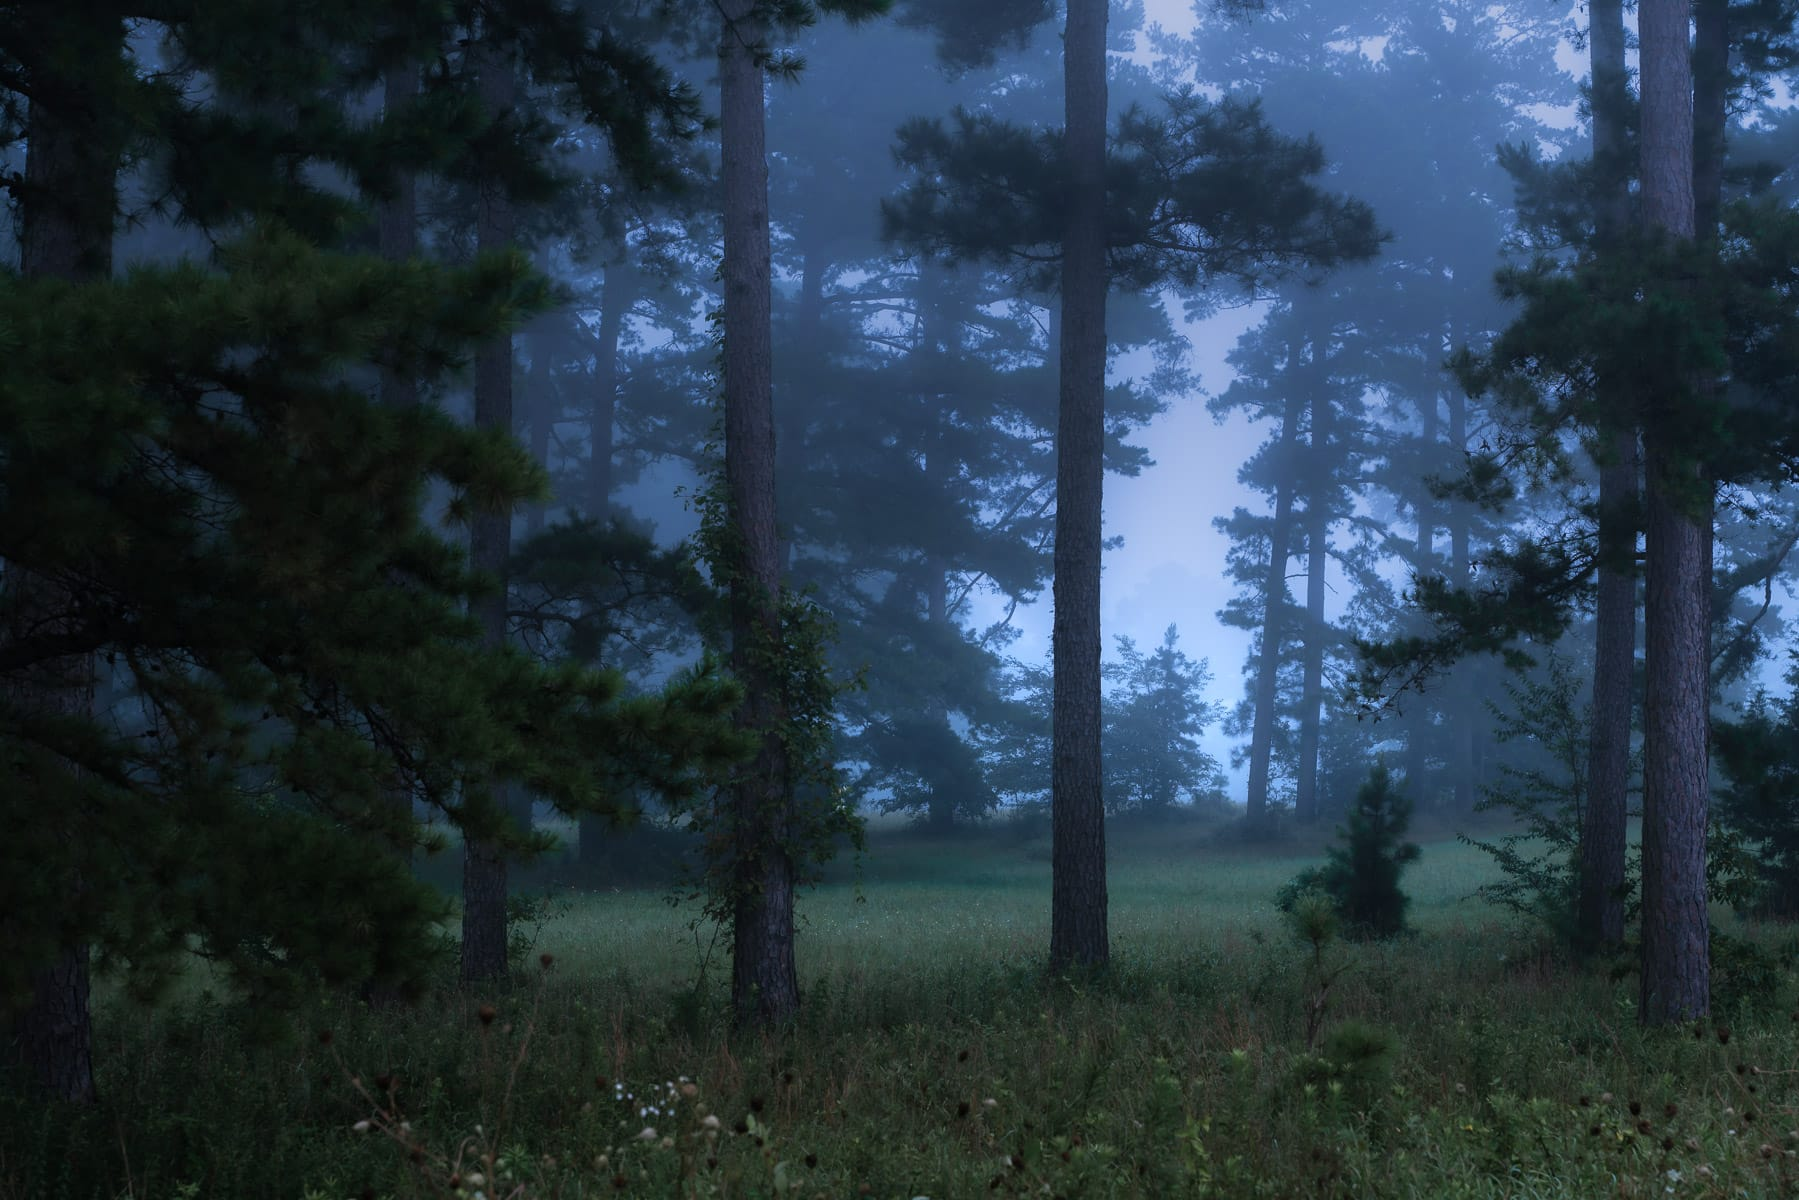 Morning fog in a forest near Mena, Arkansas.